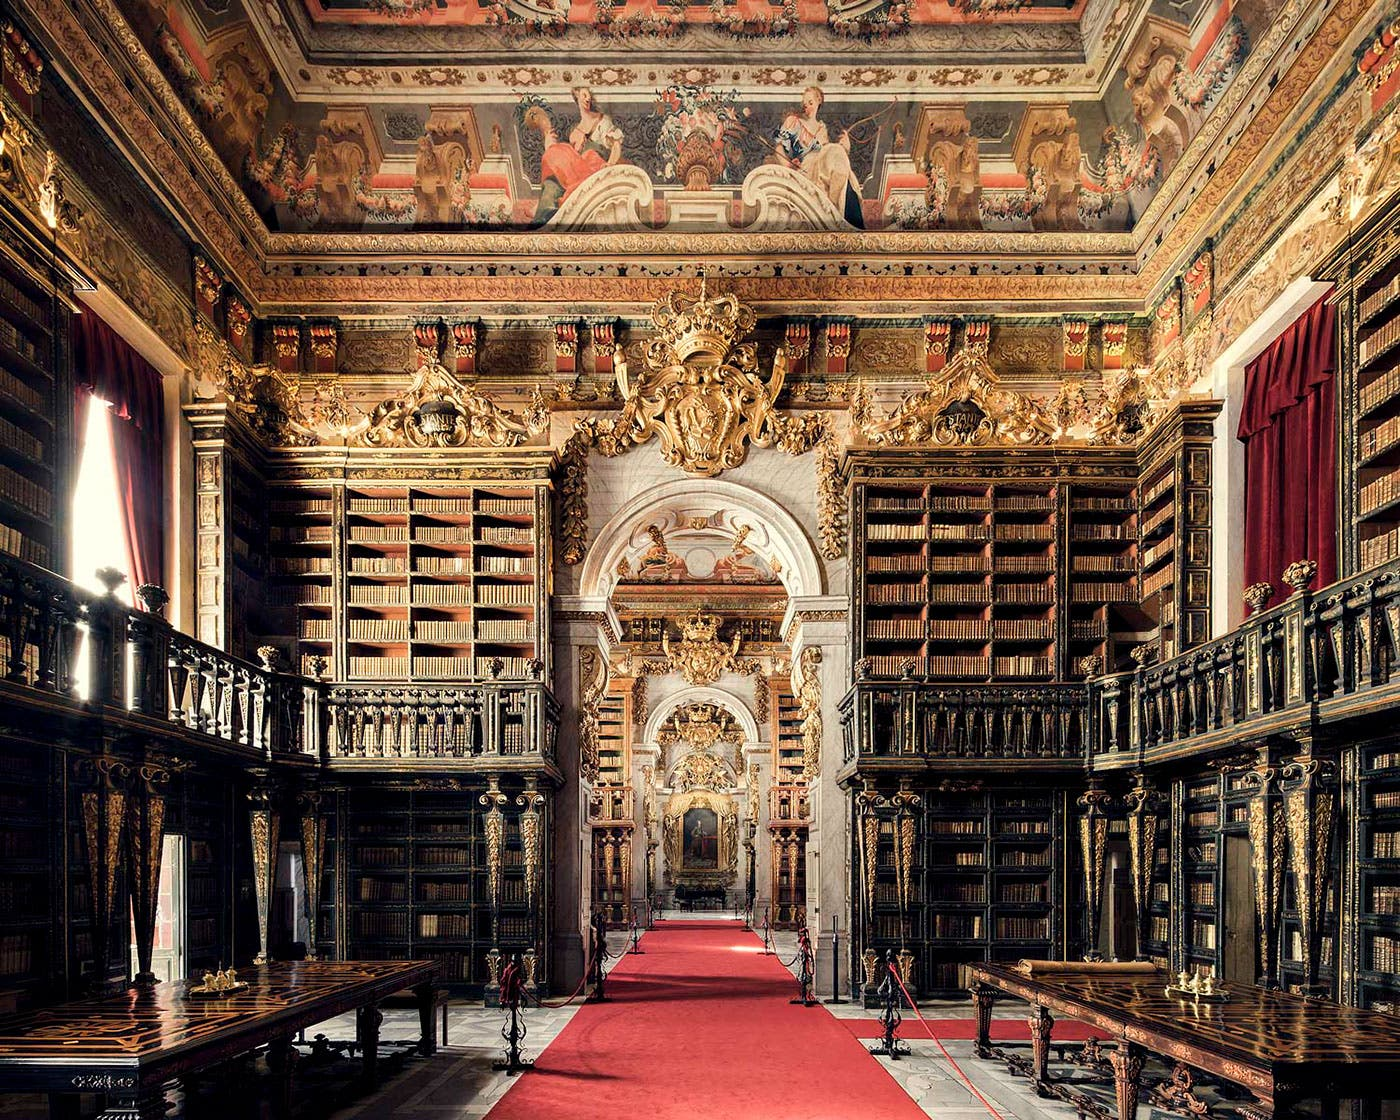 Thibaud Poirer Showcases the Stunning Beauty of Europe's Timeless Libraries